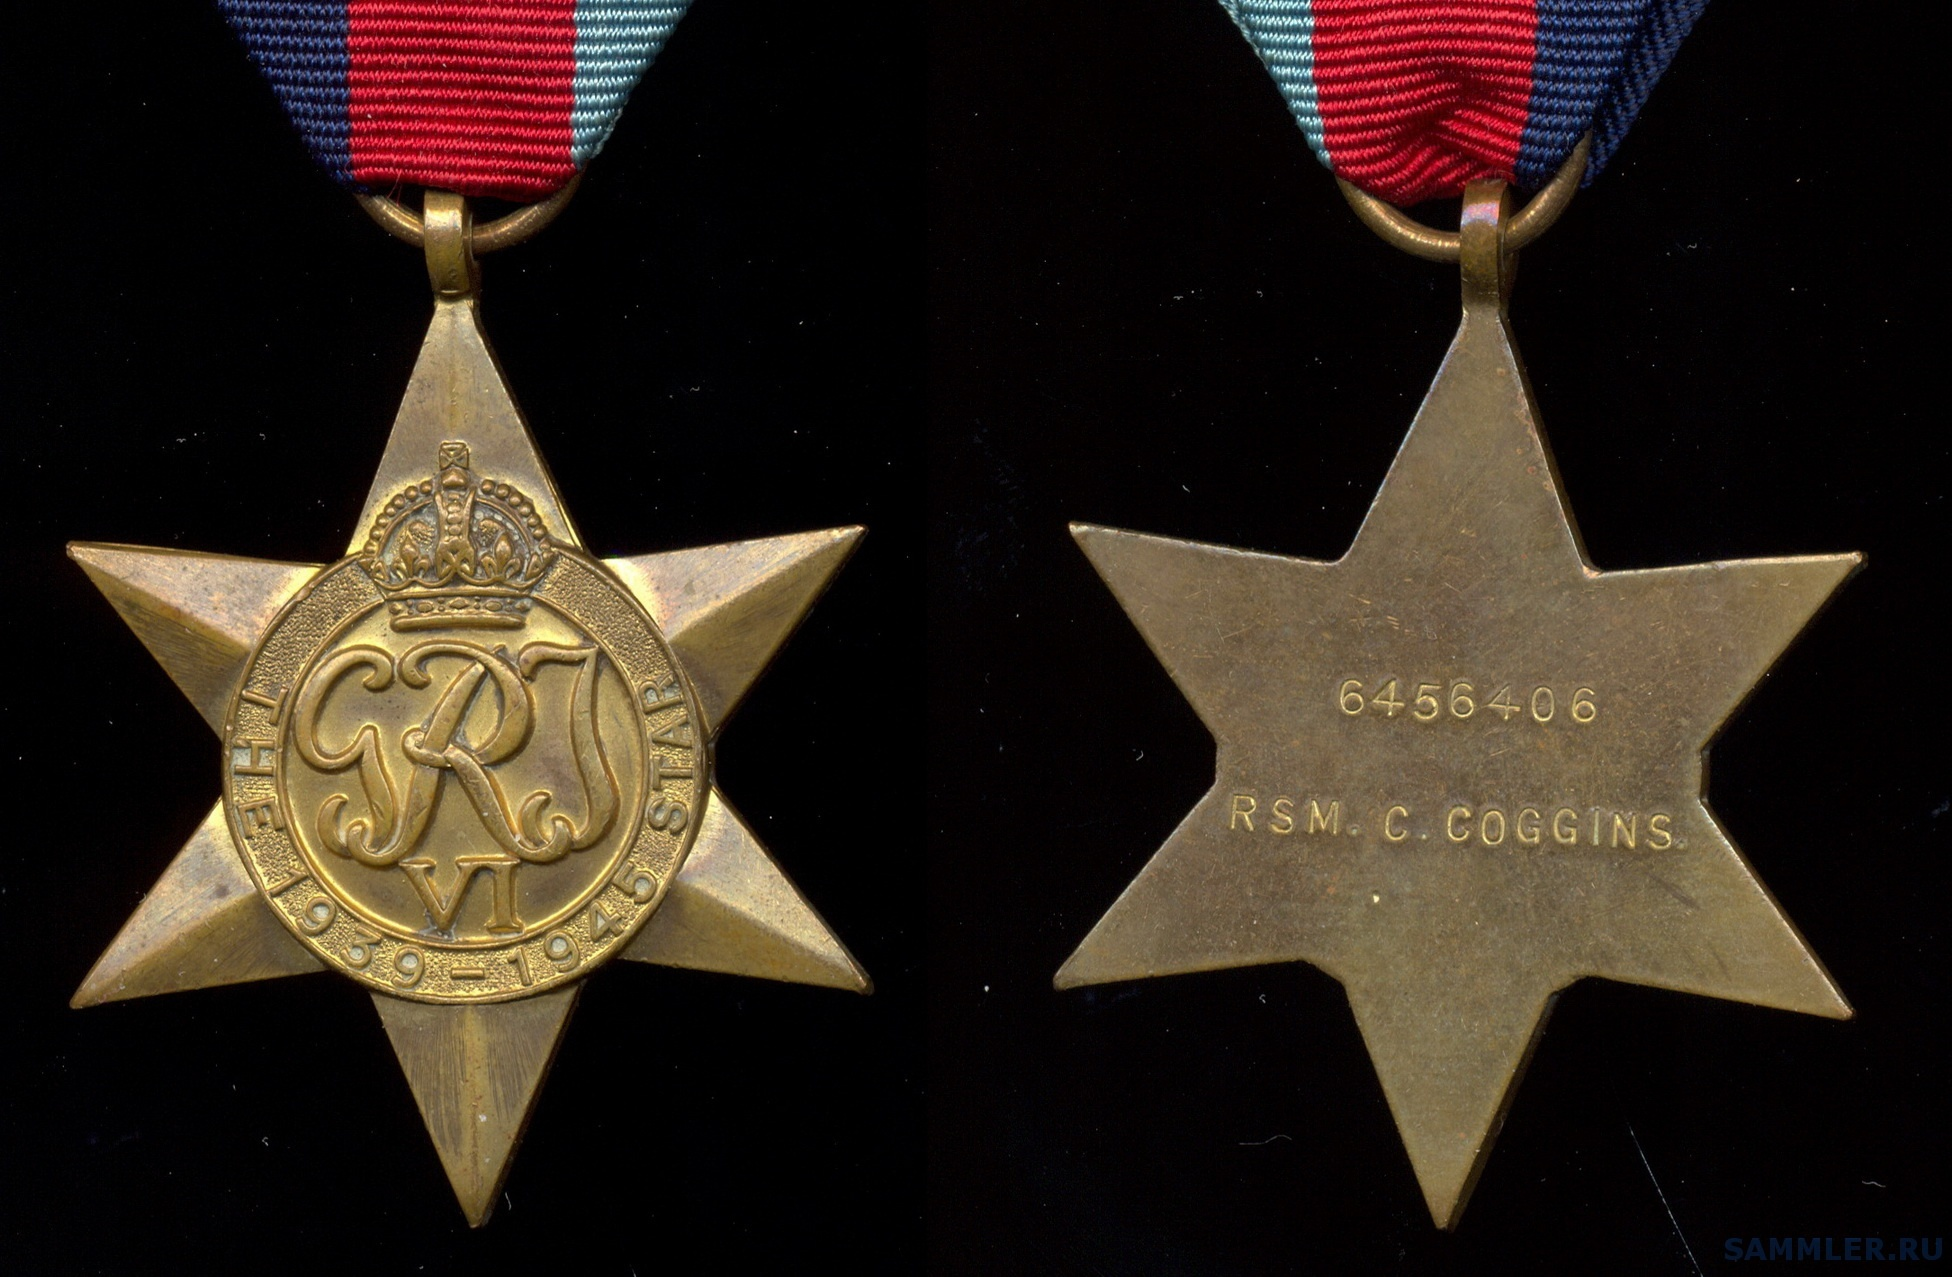 1939 - 1945 Star to 6456406 RSM. C. COGGINS (gr. of 2 with KGVI Reg.Army LSGC Medal).jpg